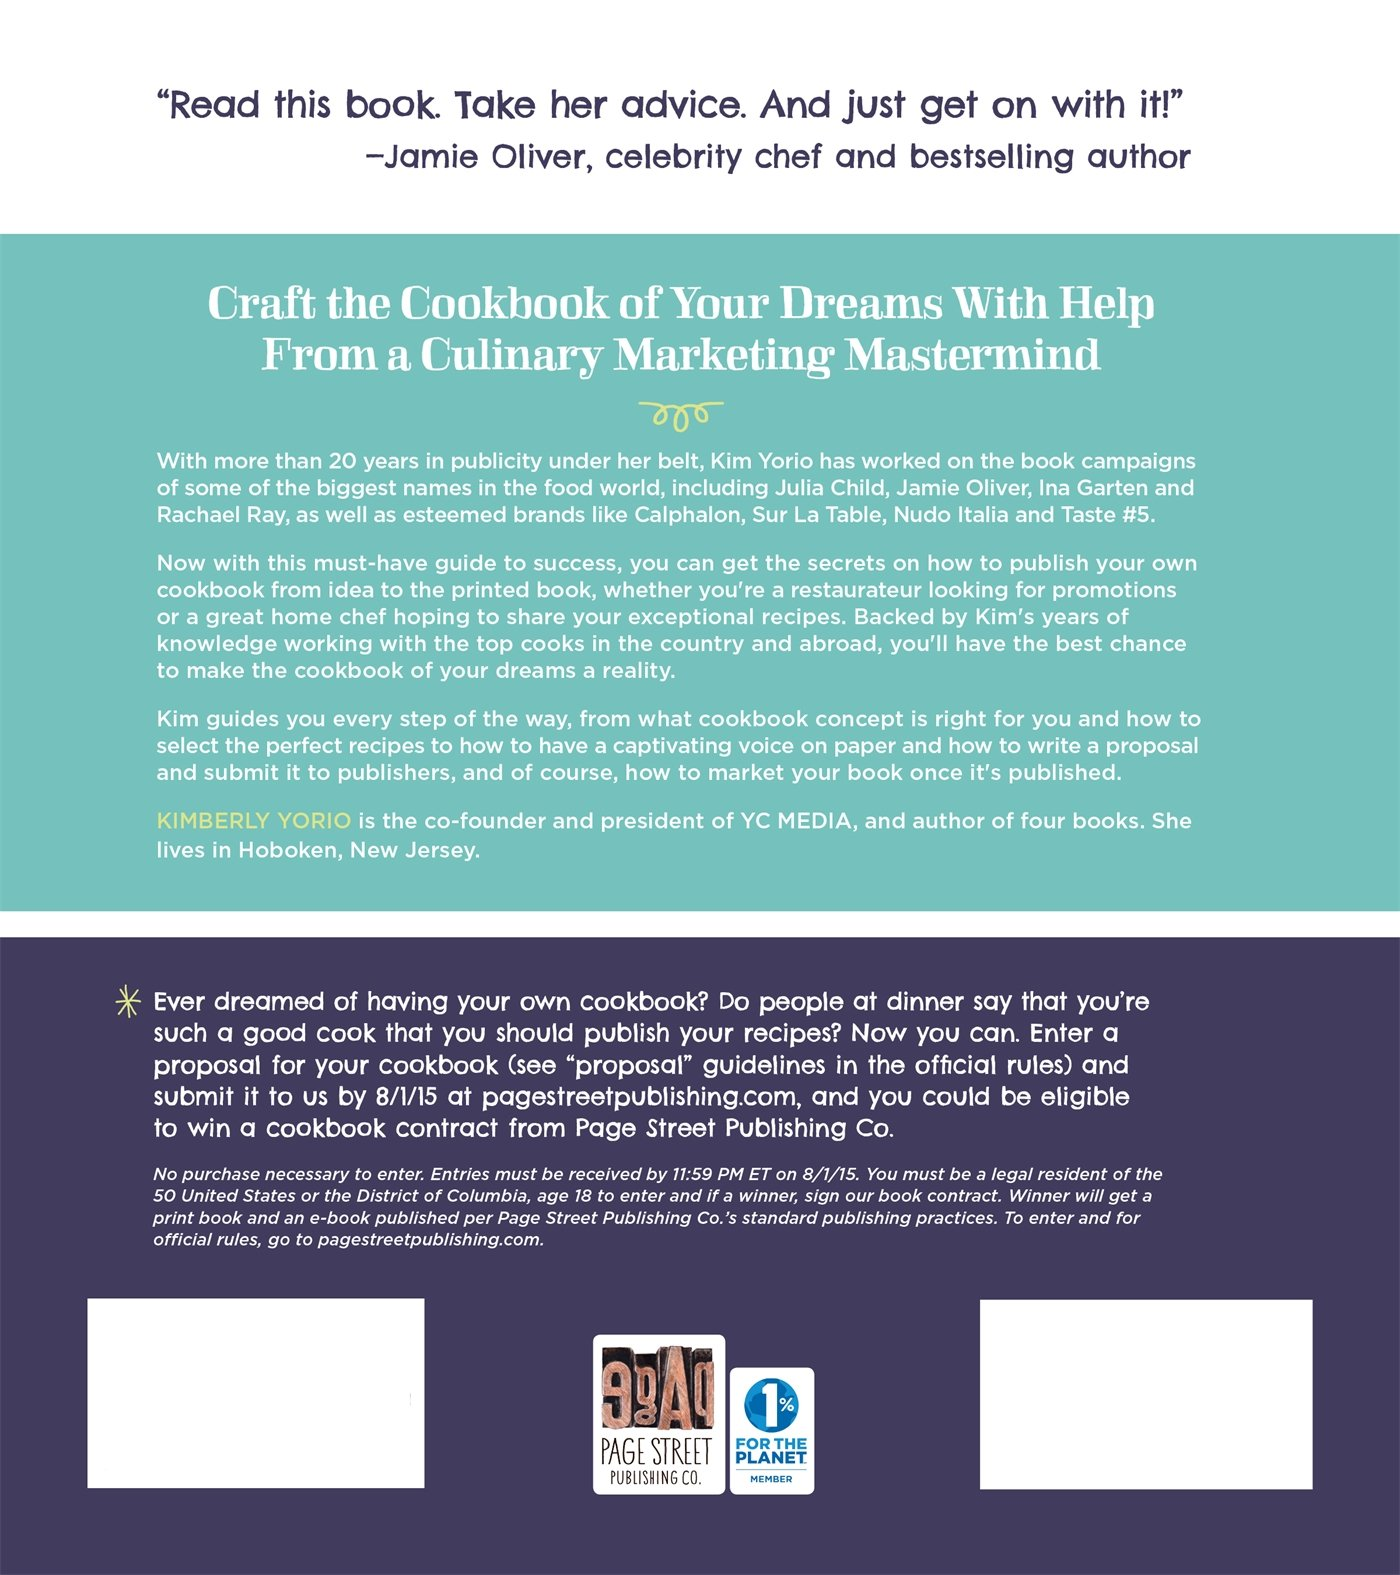 Share Your Passion For Cooking From Idea To Published Book To Marketing  It Like A Bestseller: Kim Yorio, Jamie Oliver: 9781624140600: Amazon:  Books